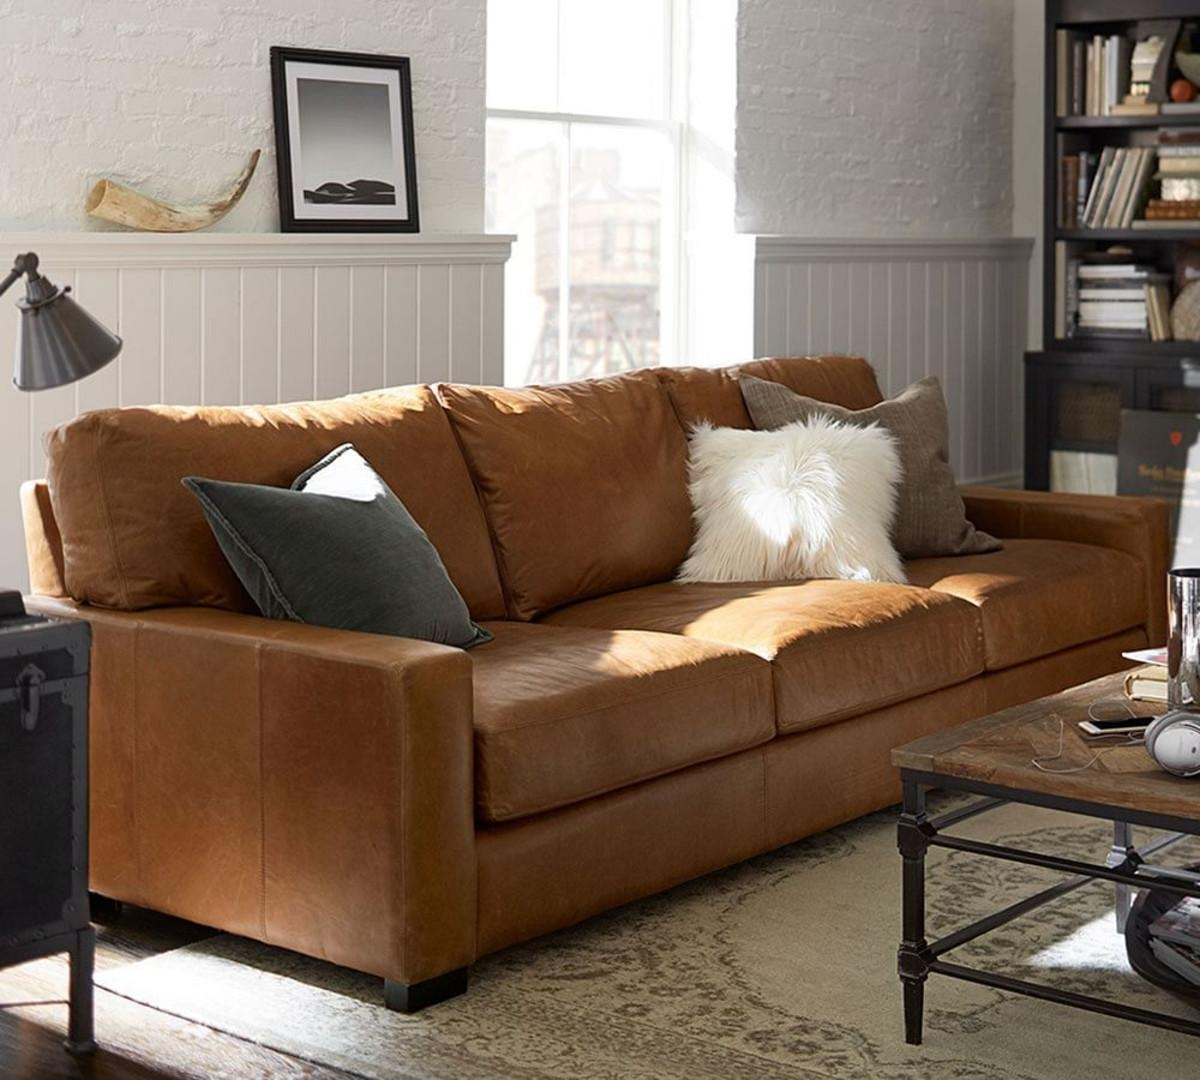 Caramel Leather Sofa Set | Demand Sofas Set With Carmel Leather Sofas (Image 6 of 20)